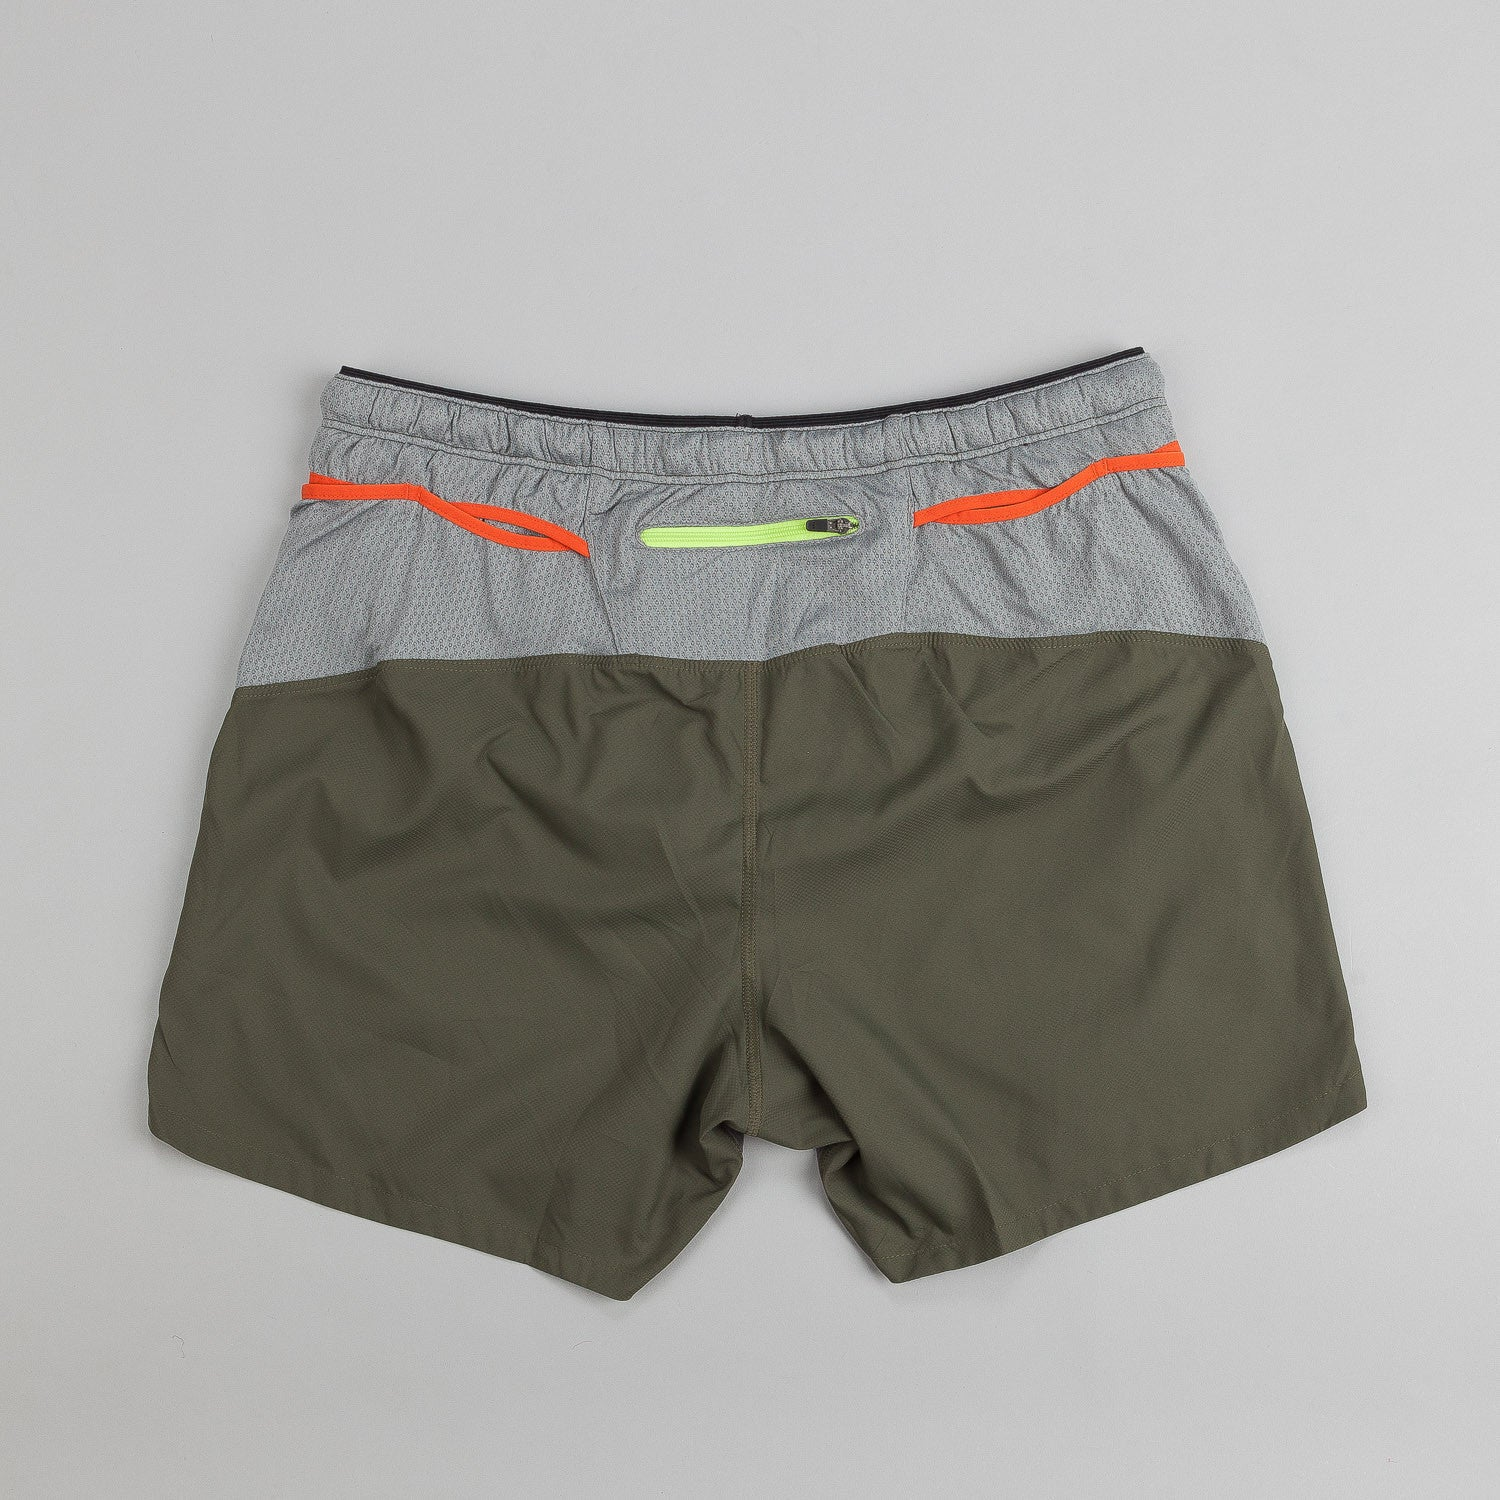 "Patagonia Strider Pro Shorts 5"" - Basin Green"